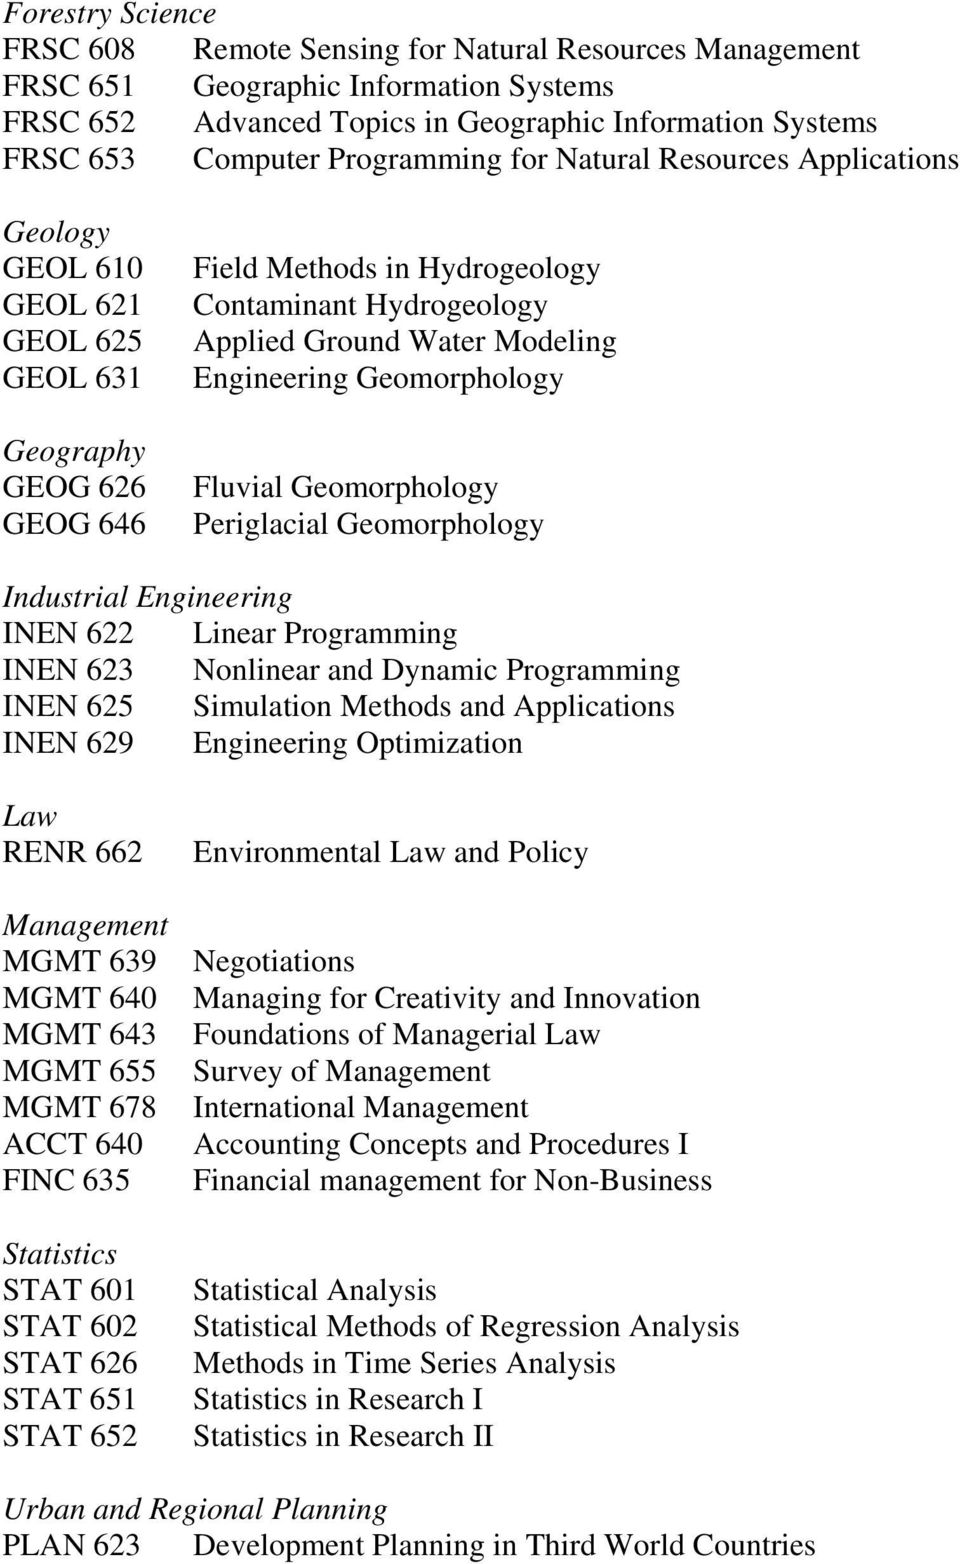 Modeling Engineering Geomorphology Fluvial Geomorphology Periglacial Geomorphology Industrial Engineering INEN 622 Linear Programming INEN 623 Nonlinear and Dynamic Programming INEN 625 Simulation